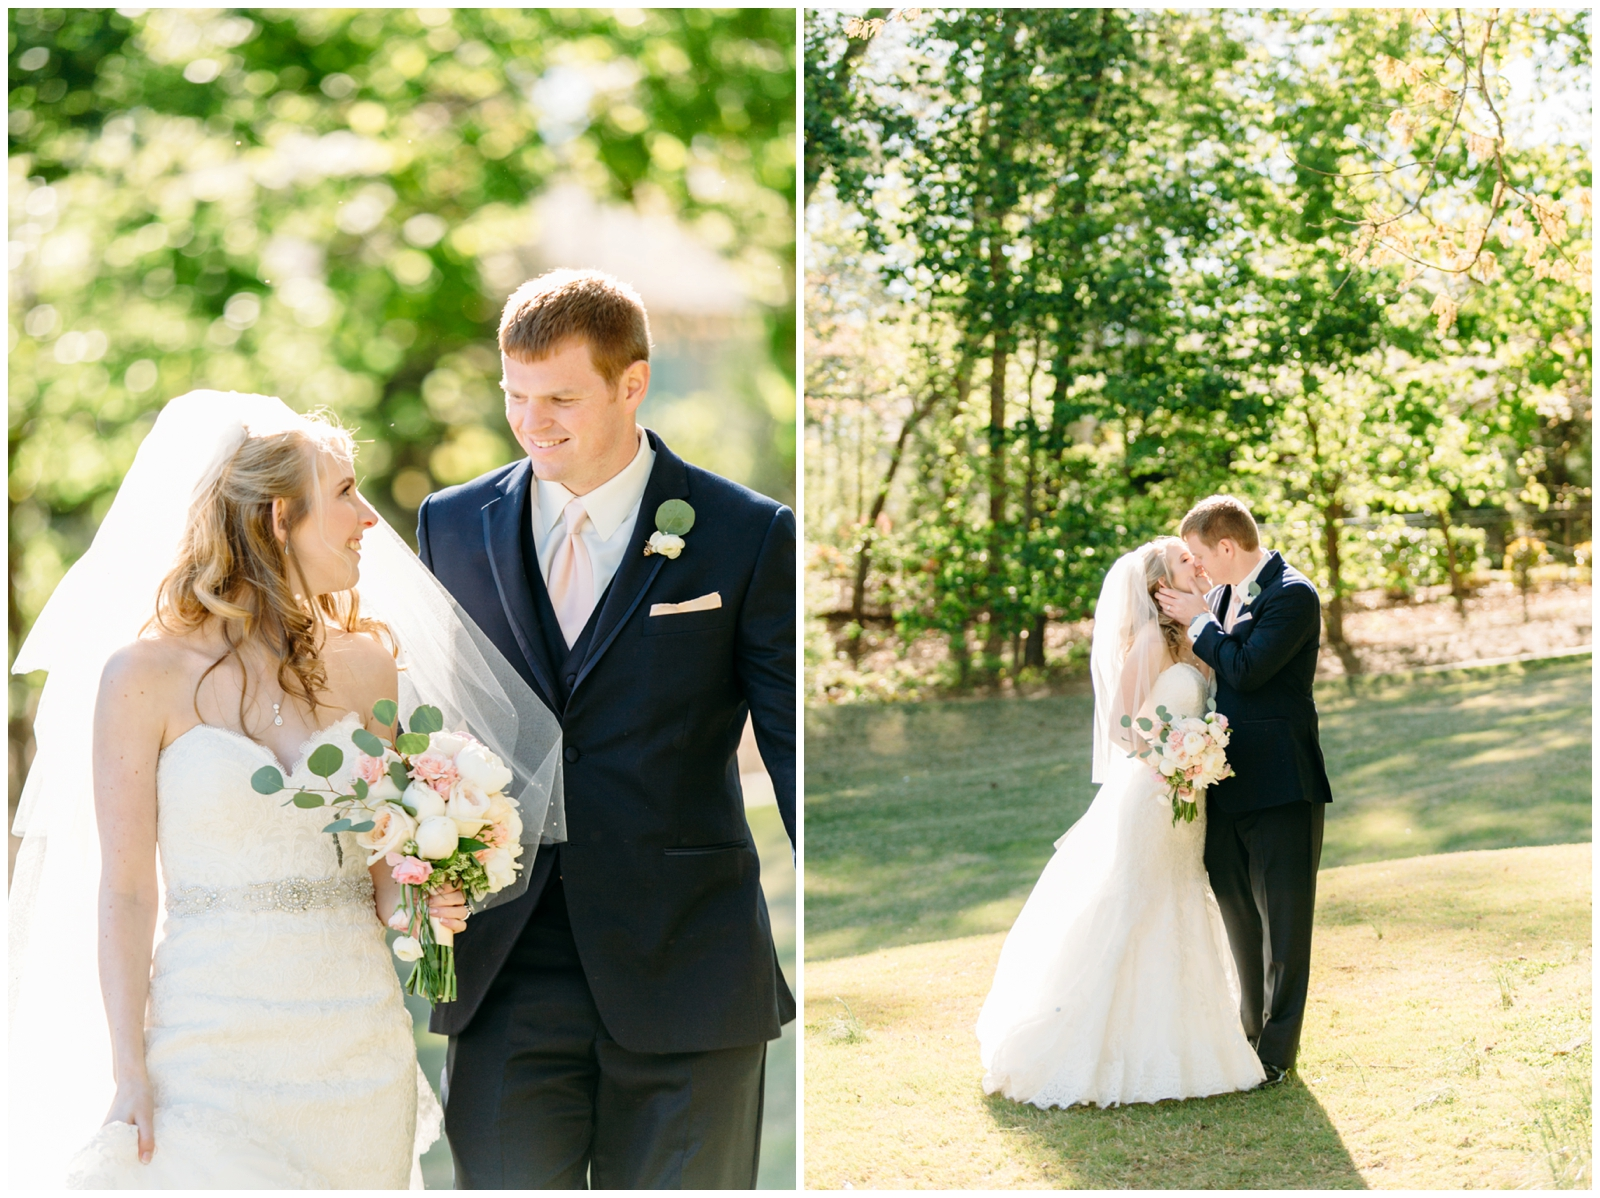 Morgan & Kyle_RoswellWedding_ArdentStory_0025